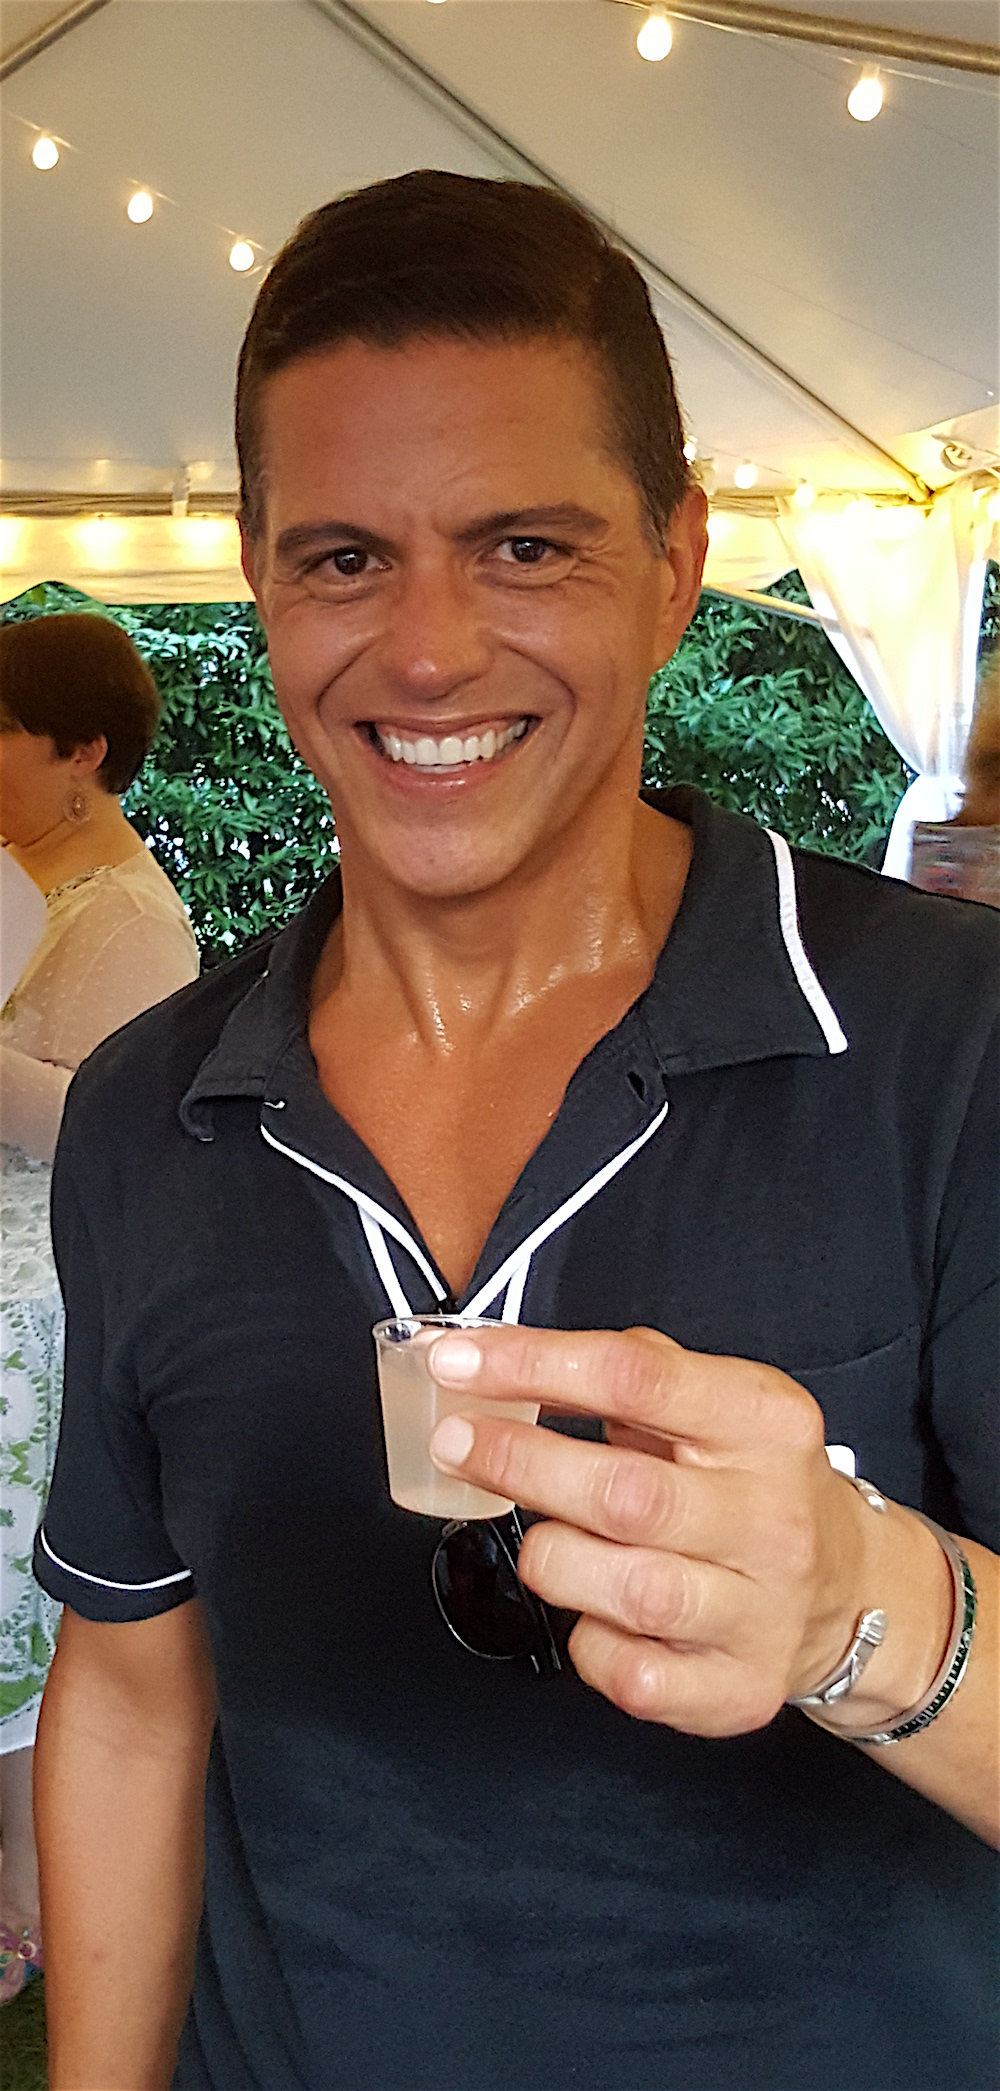 Rene Yanes was the winner of the cocktail contest with his drink called The Nicholas, named after the historic building where he lives. Congrats!